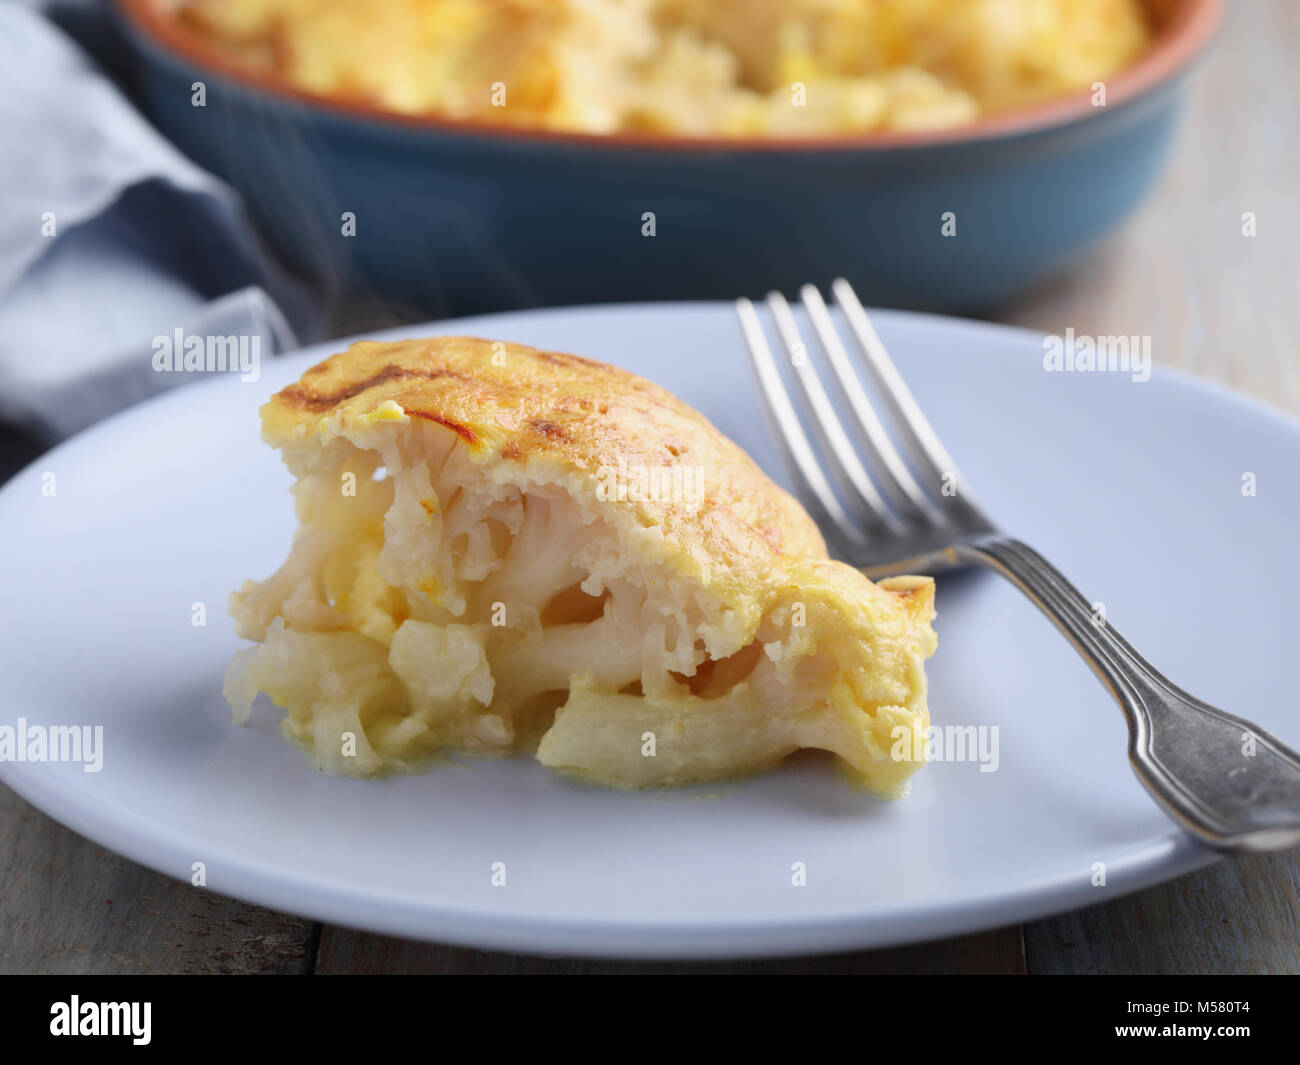 Portion of cauliflower cheese with saffron - Stock Image